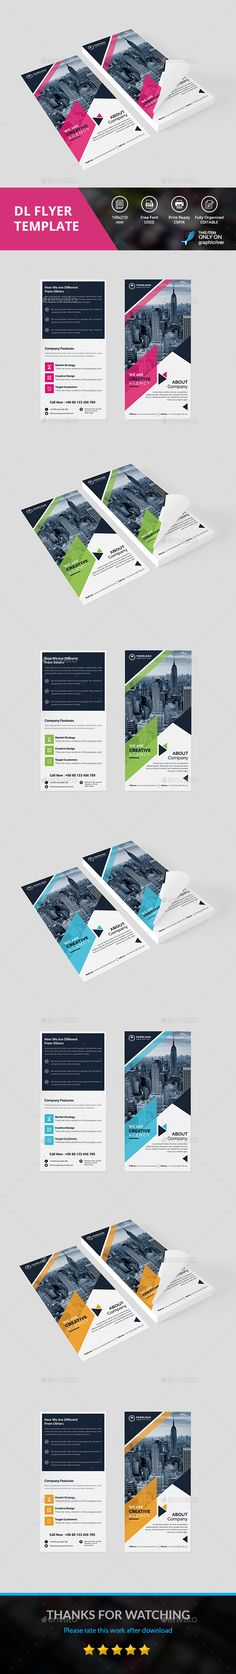 DL Flyer by DesignsTemplate This is Corporate DL Flyer . This template download contains 300 dpi print-ready CMYK psd files. All main elements are editable an